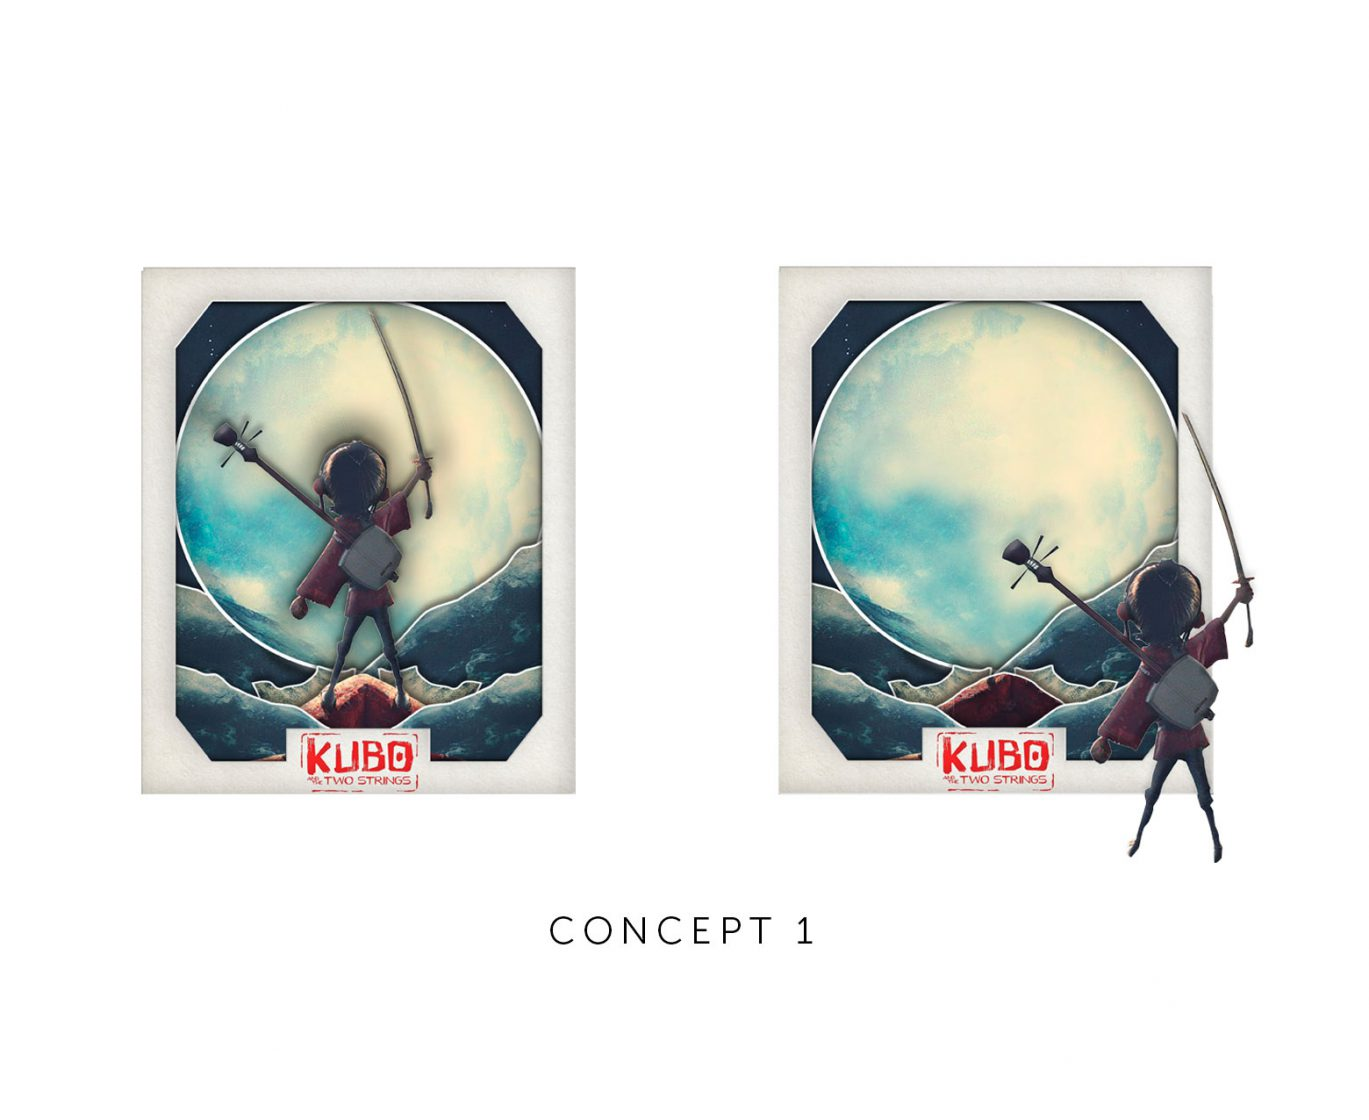 Kubo and the two strings blueprint london malvernweather Image collections